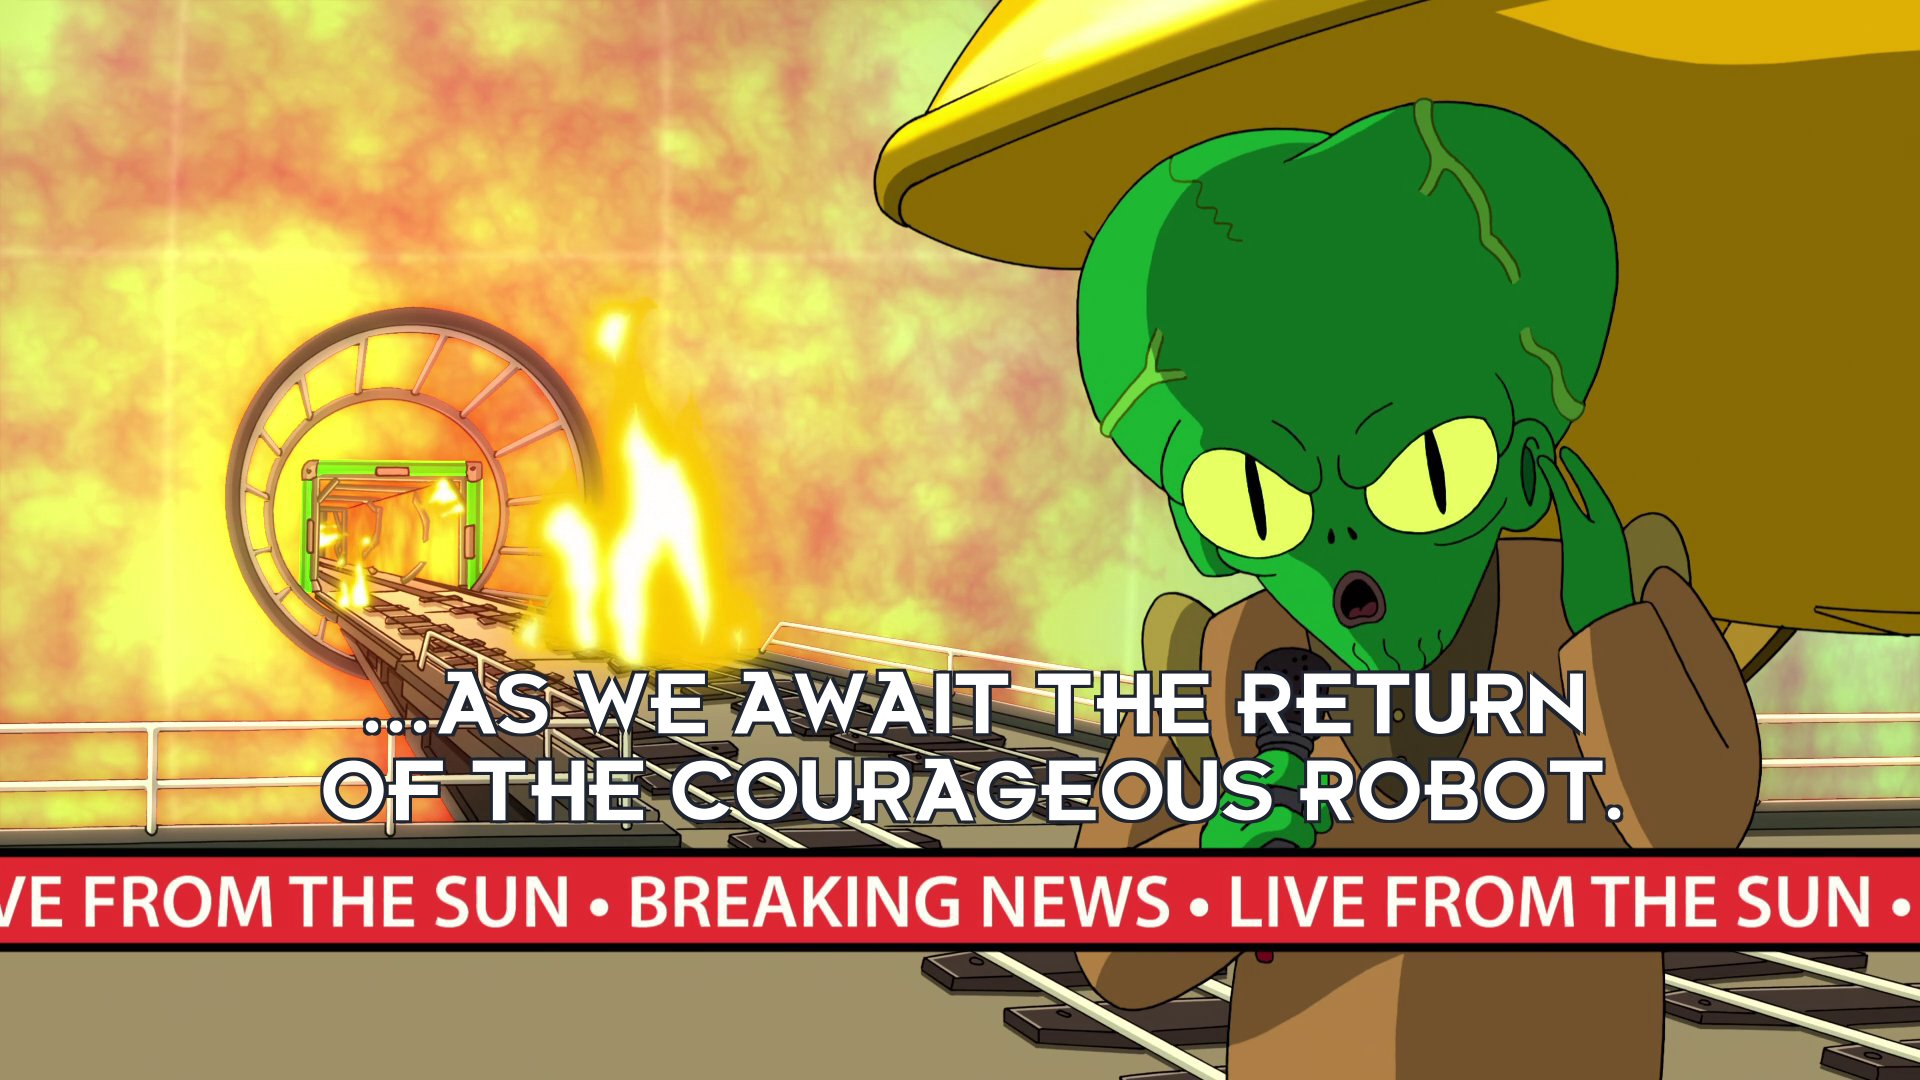 Morbo: ...as we await the return of the courageous robot.